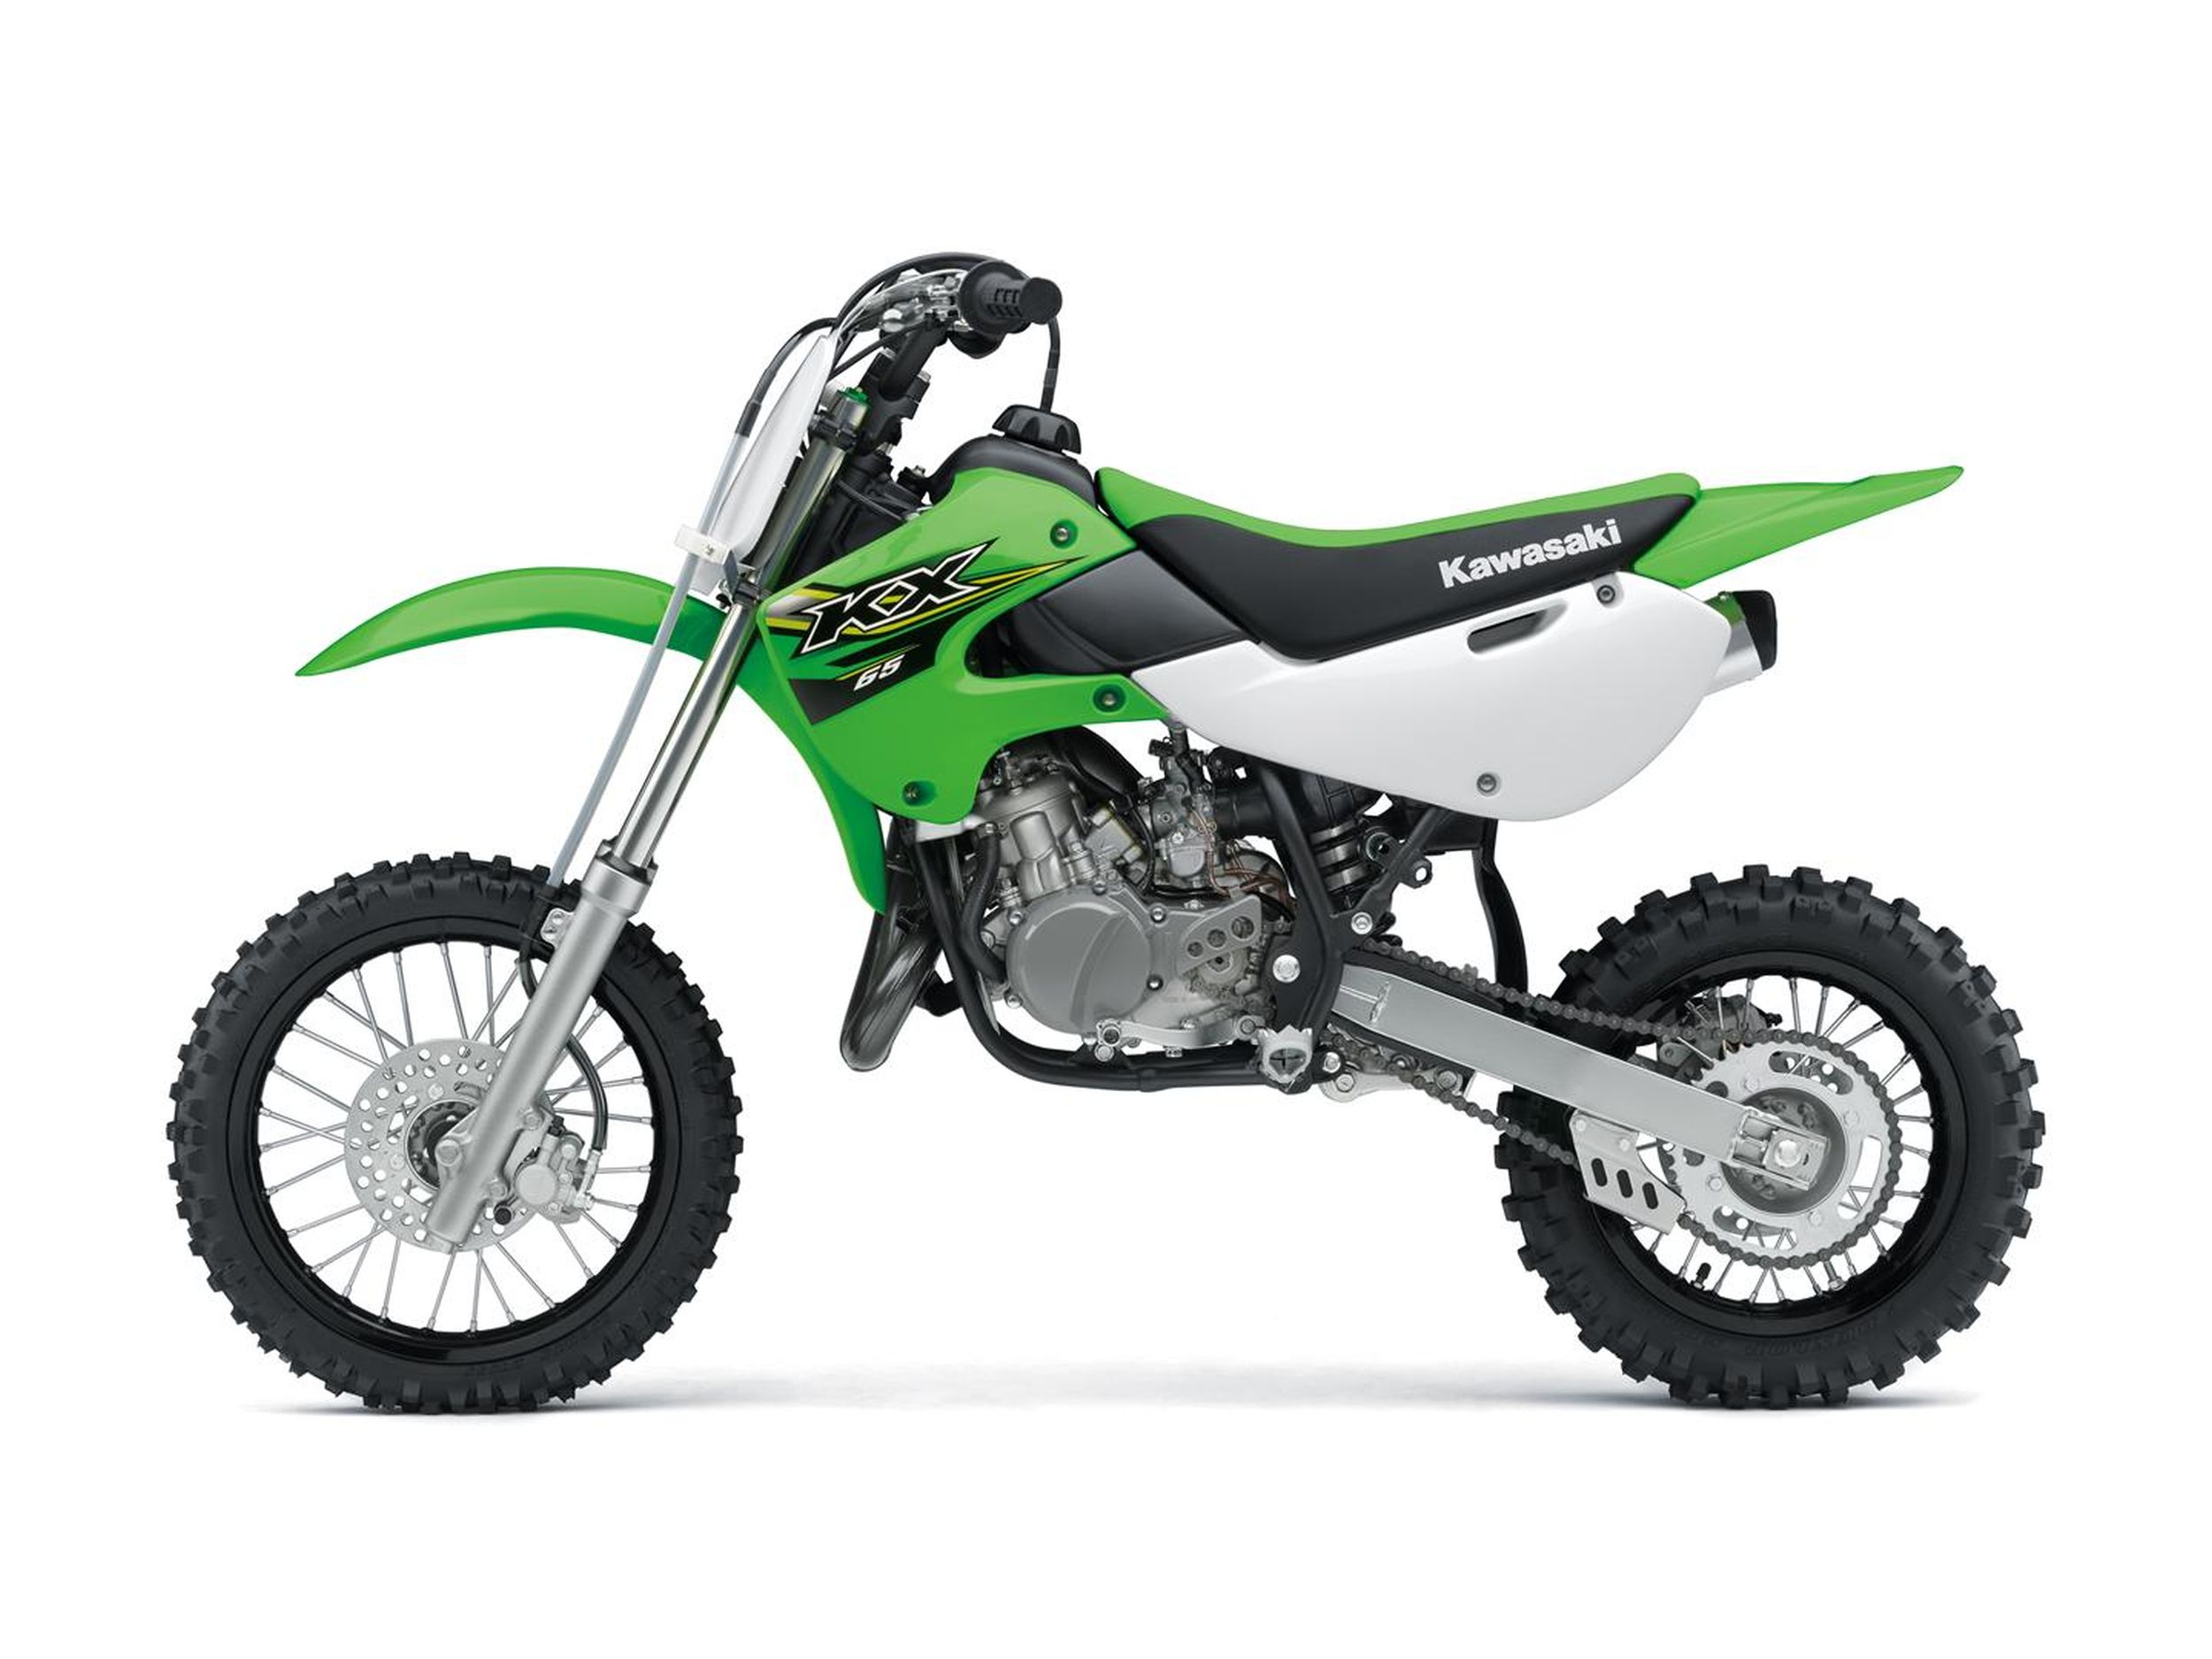 gebrauchte kawasaki kx 65 motorr der kaufen. Black Bedroom Furniture Sets. Home Design Ideas